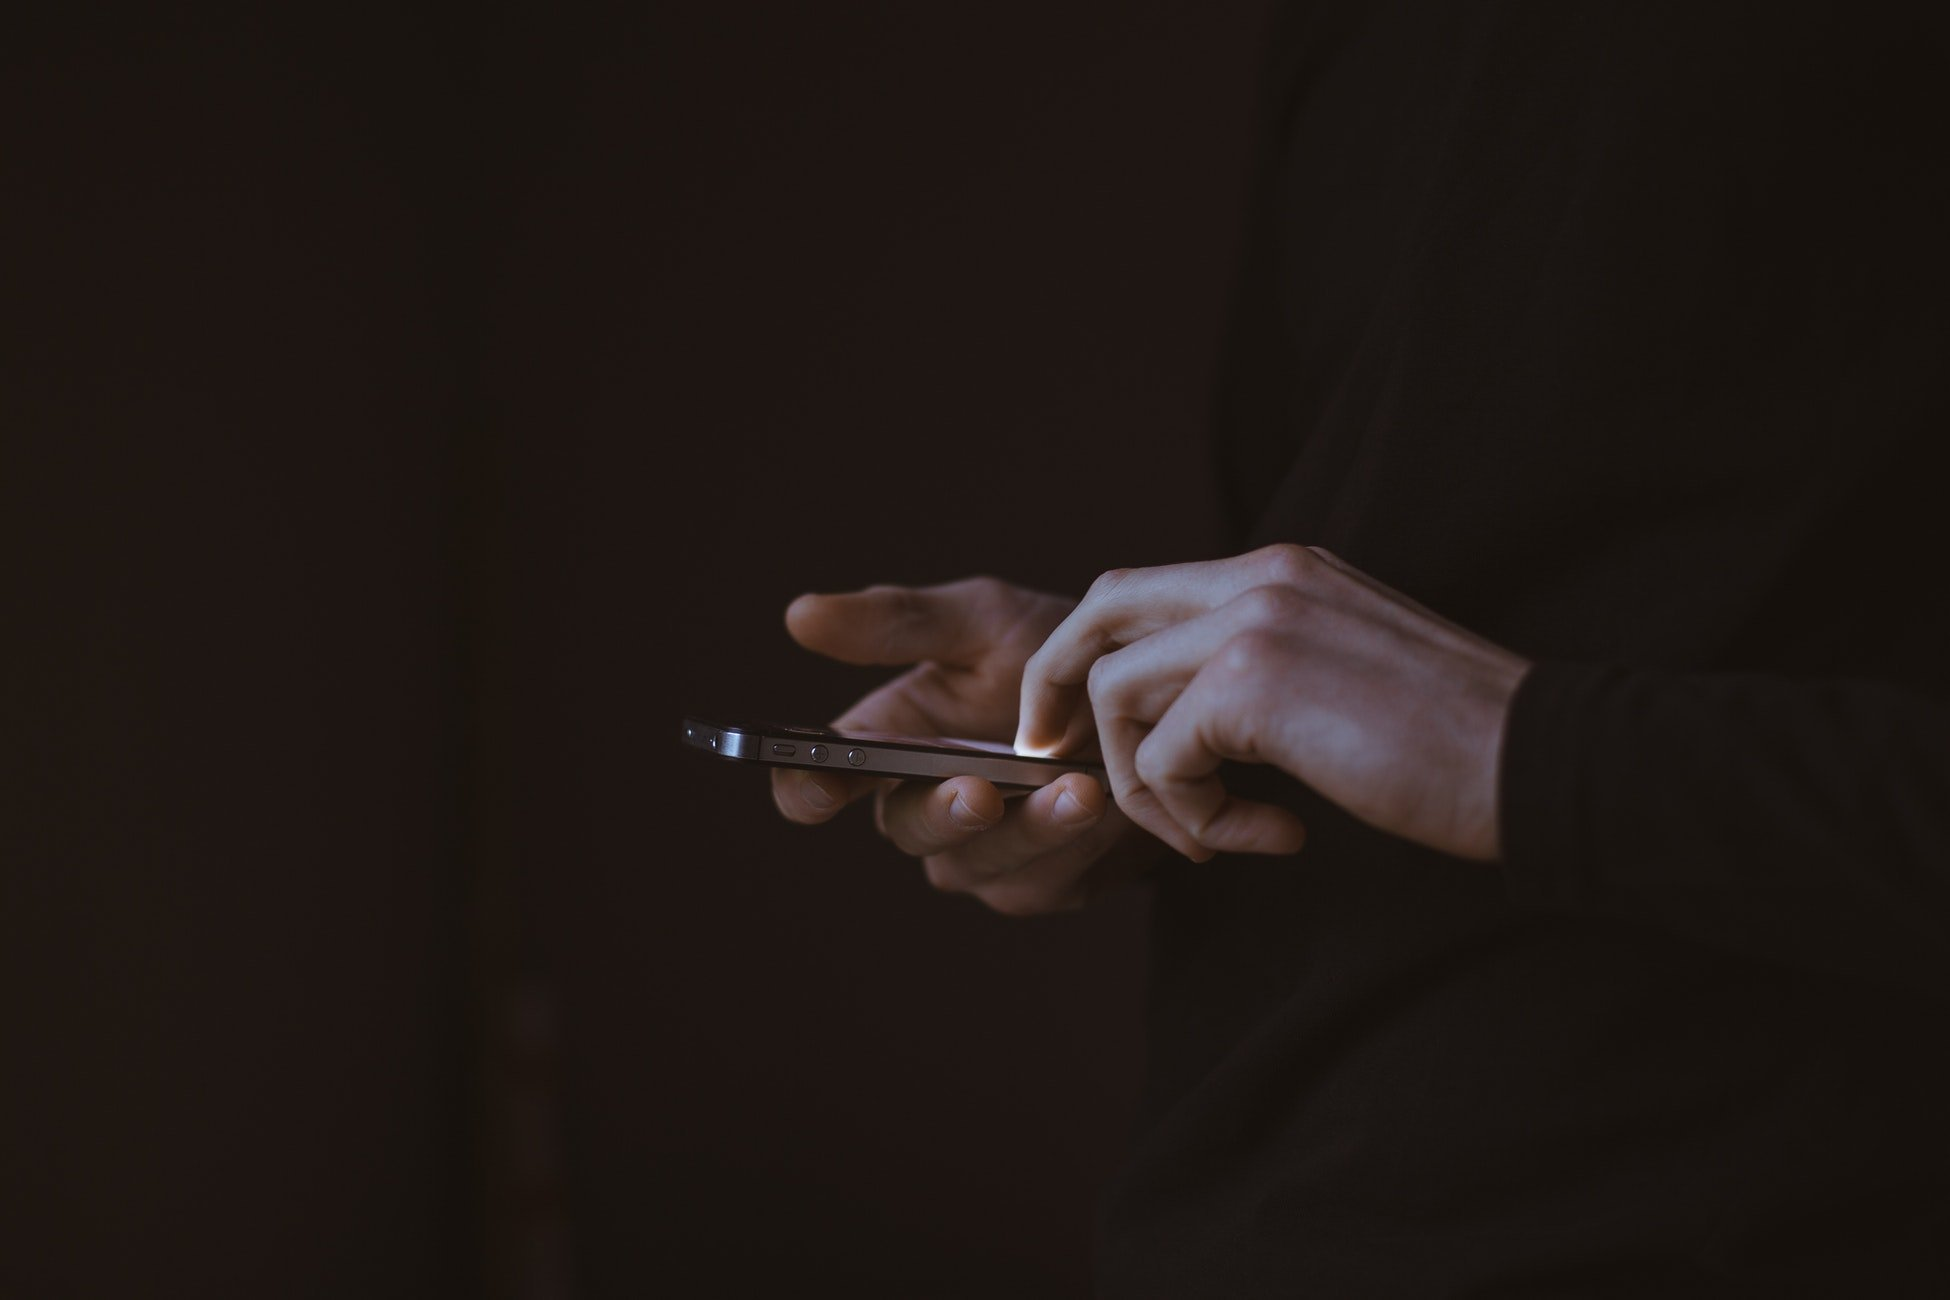 Could the new iOS update have introduced a flaw that allows USB devices access to the device? Image: Unsplash